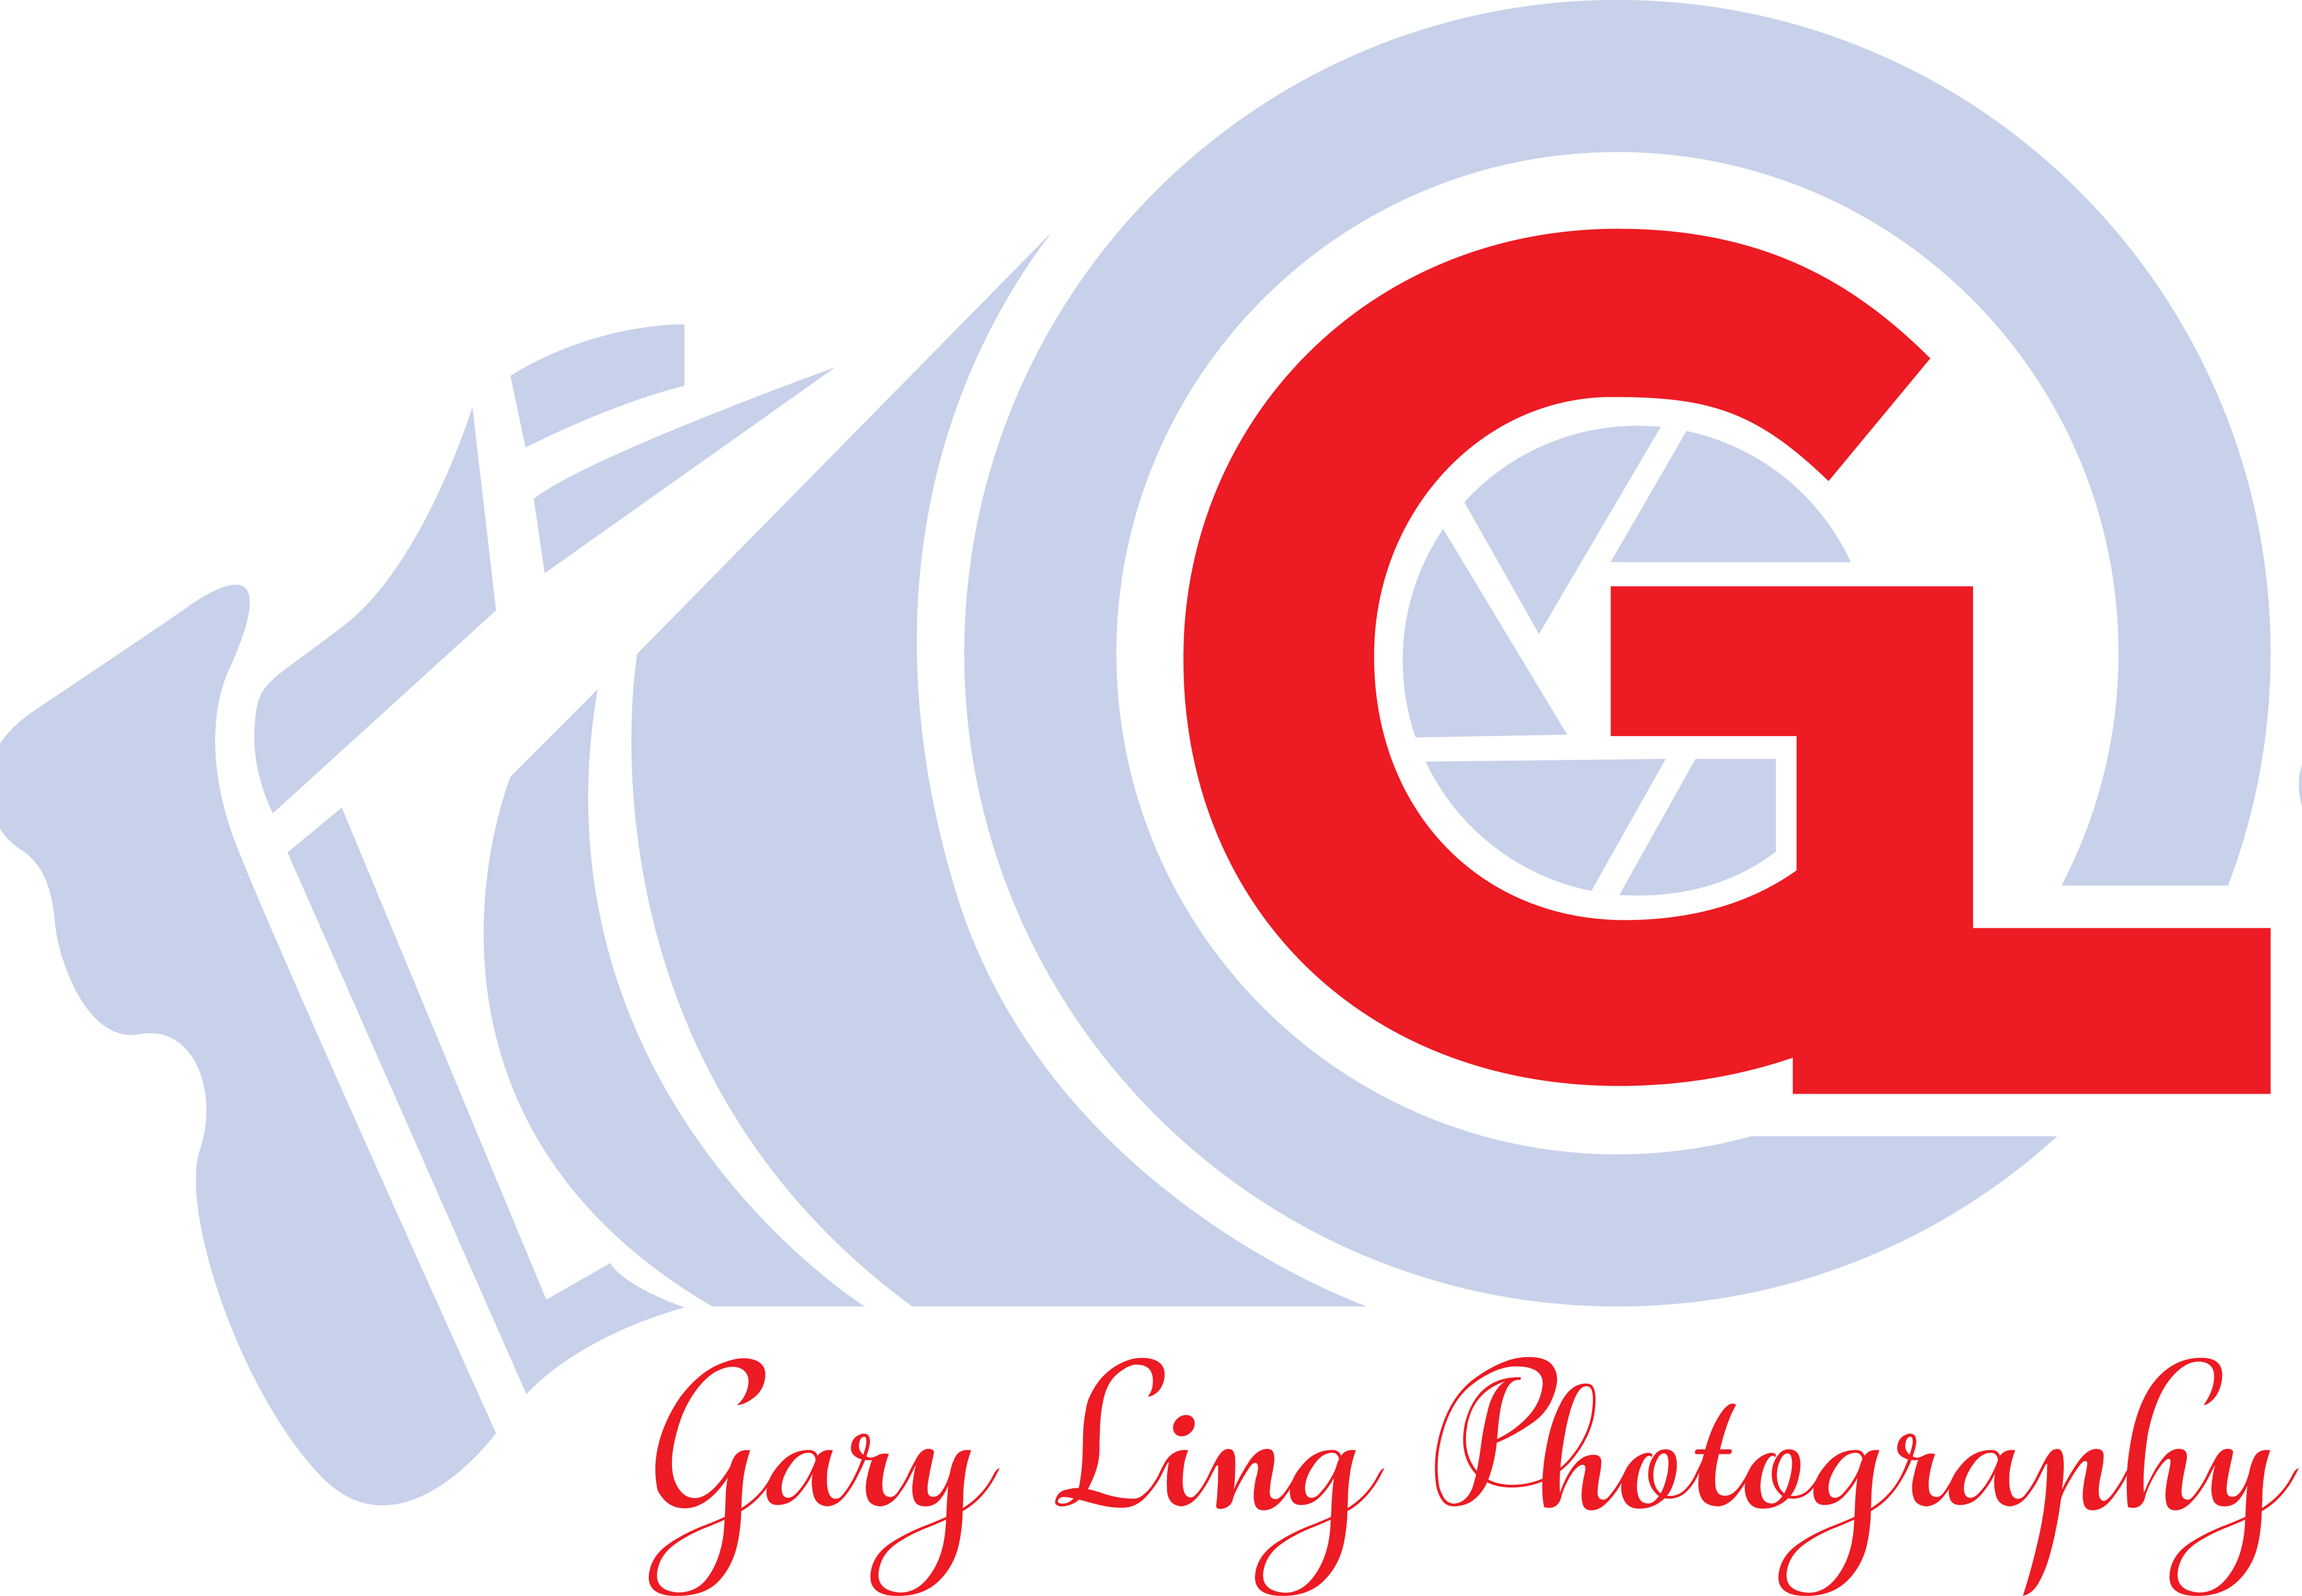 Gary Ling Photography